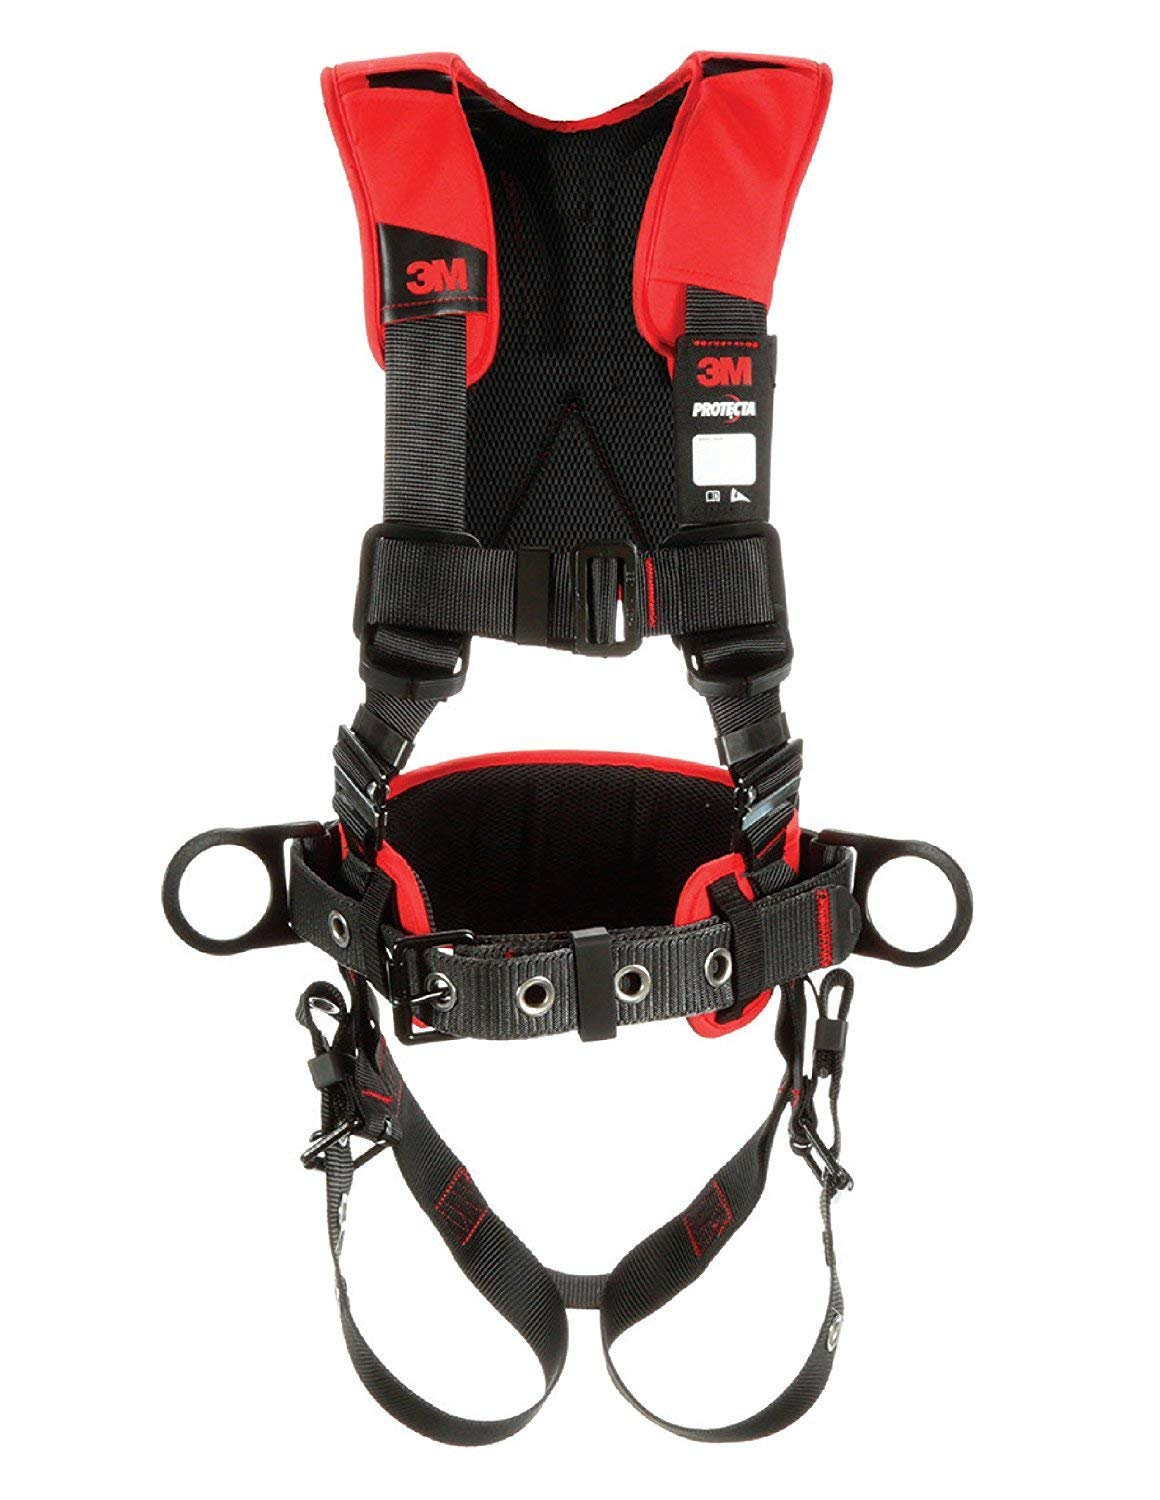 Protecta 1161205 Comfort Construction Style Positioning Harness Size Medium/Large